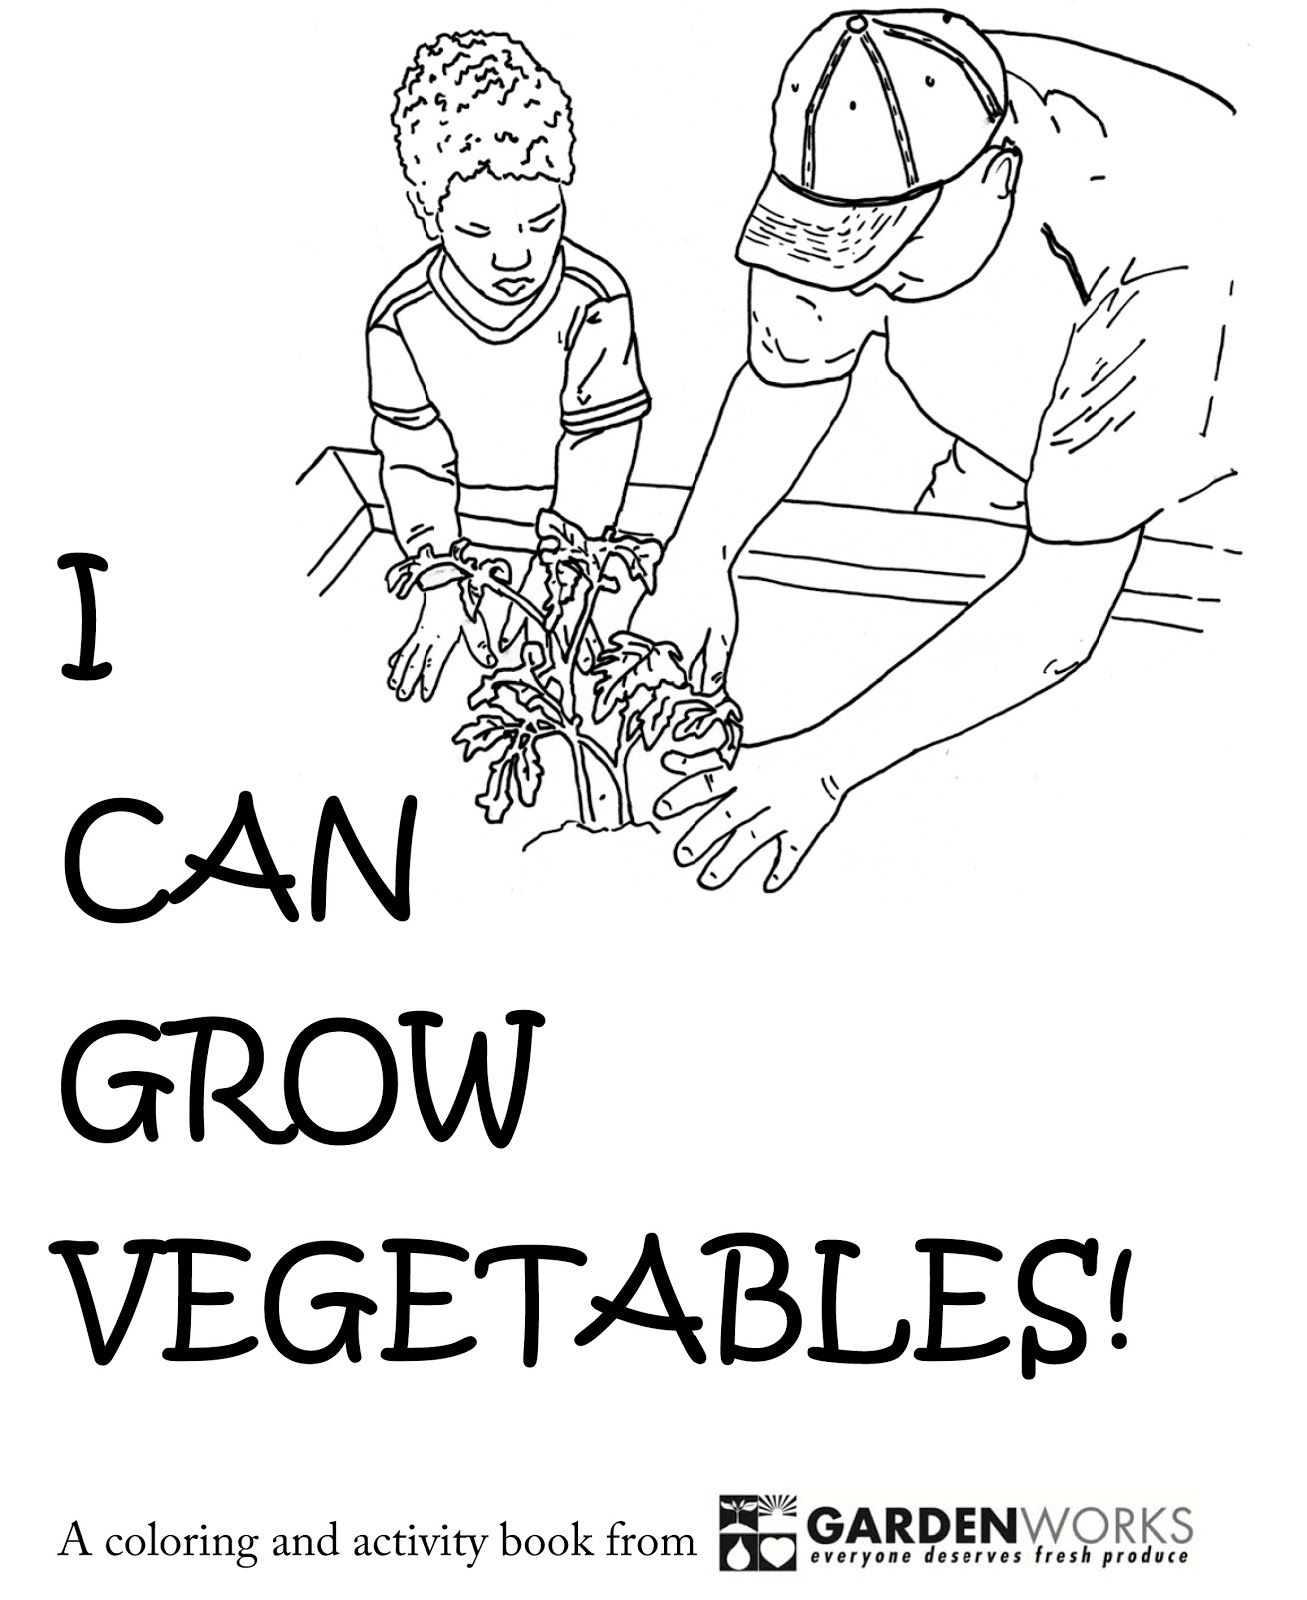 Coloring And Activity Book That Teaches Kids To Grow Vegetables